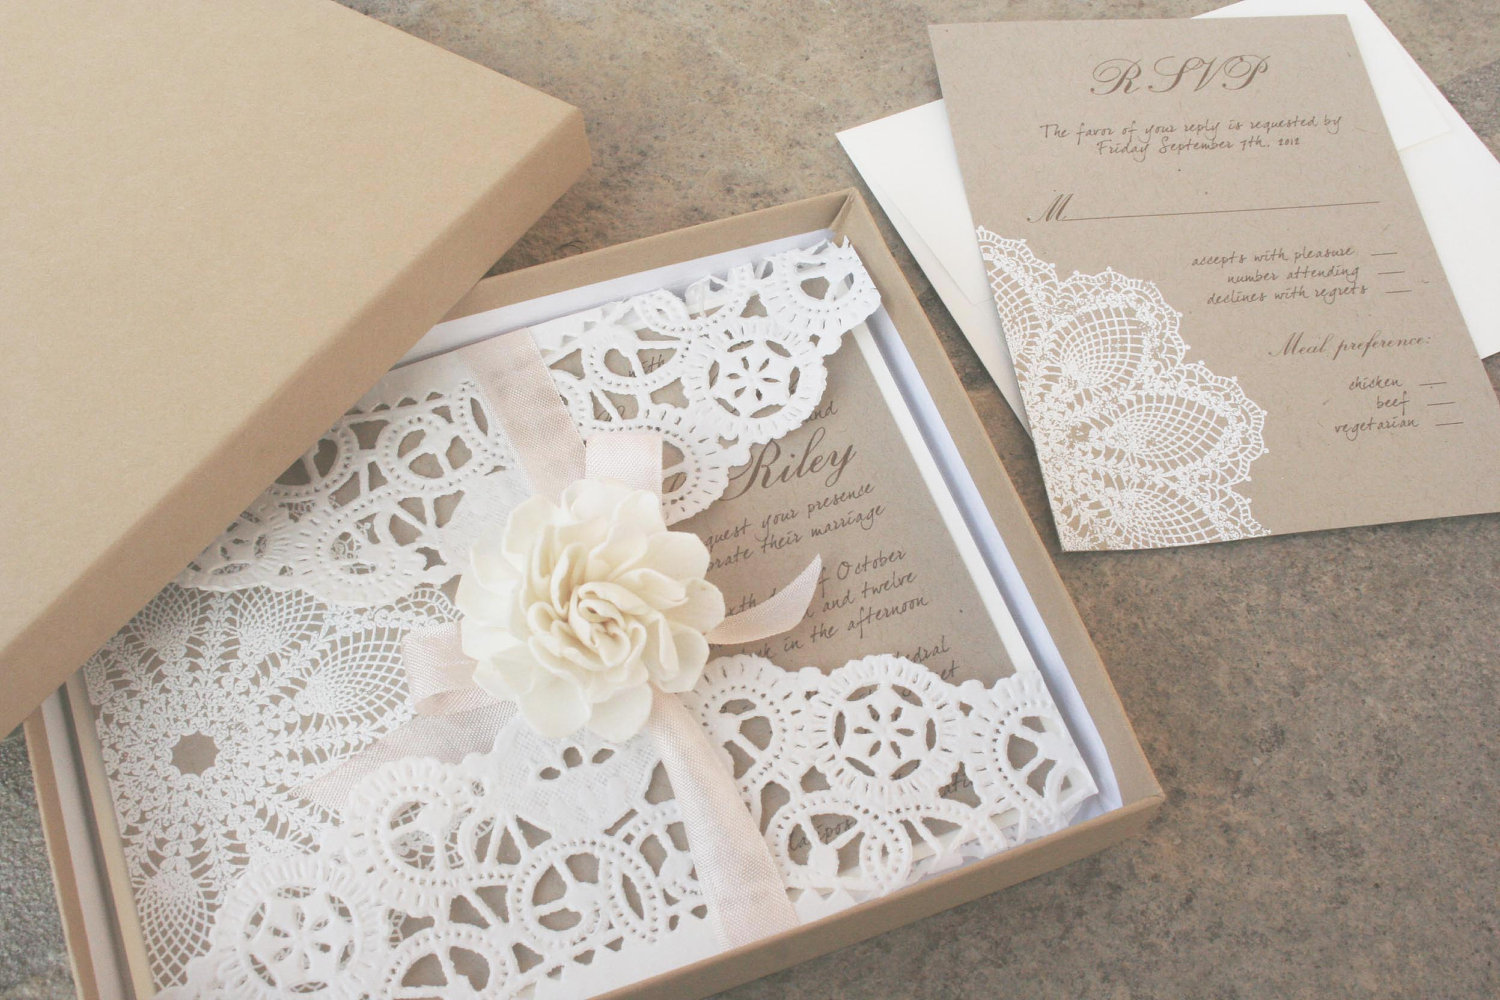 classic wedding invitations lace wedding invitations. Black Bedroom Furniture Sets. Home Design Ideas